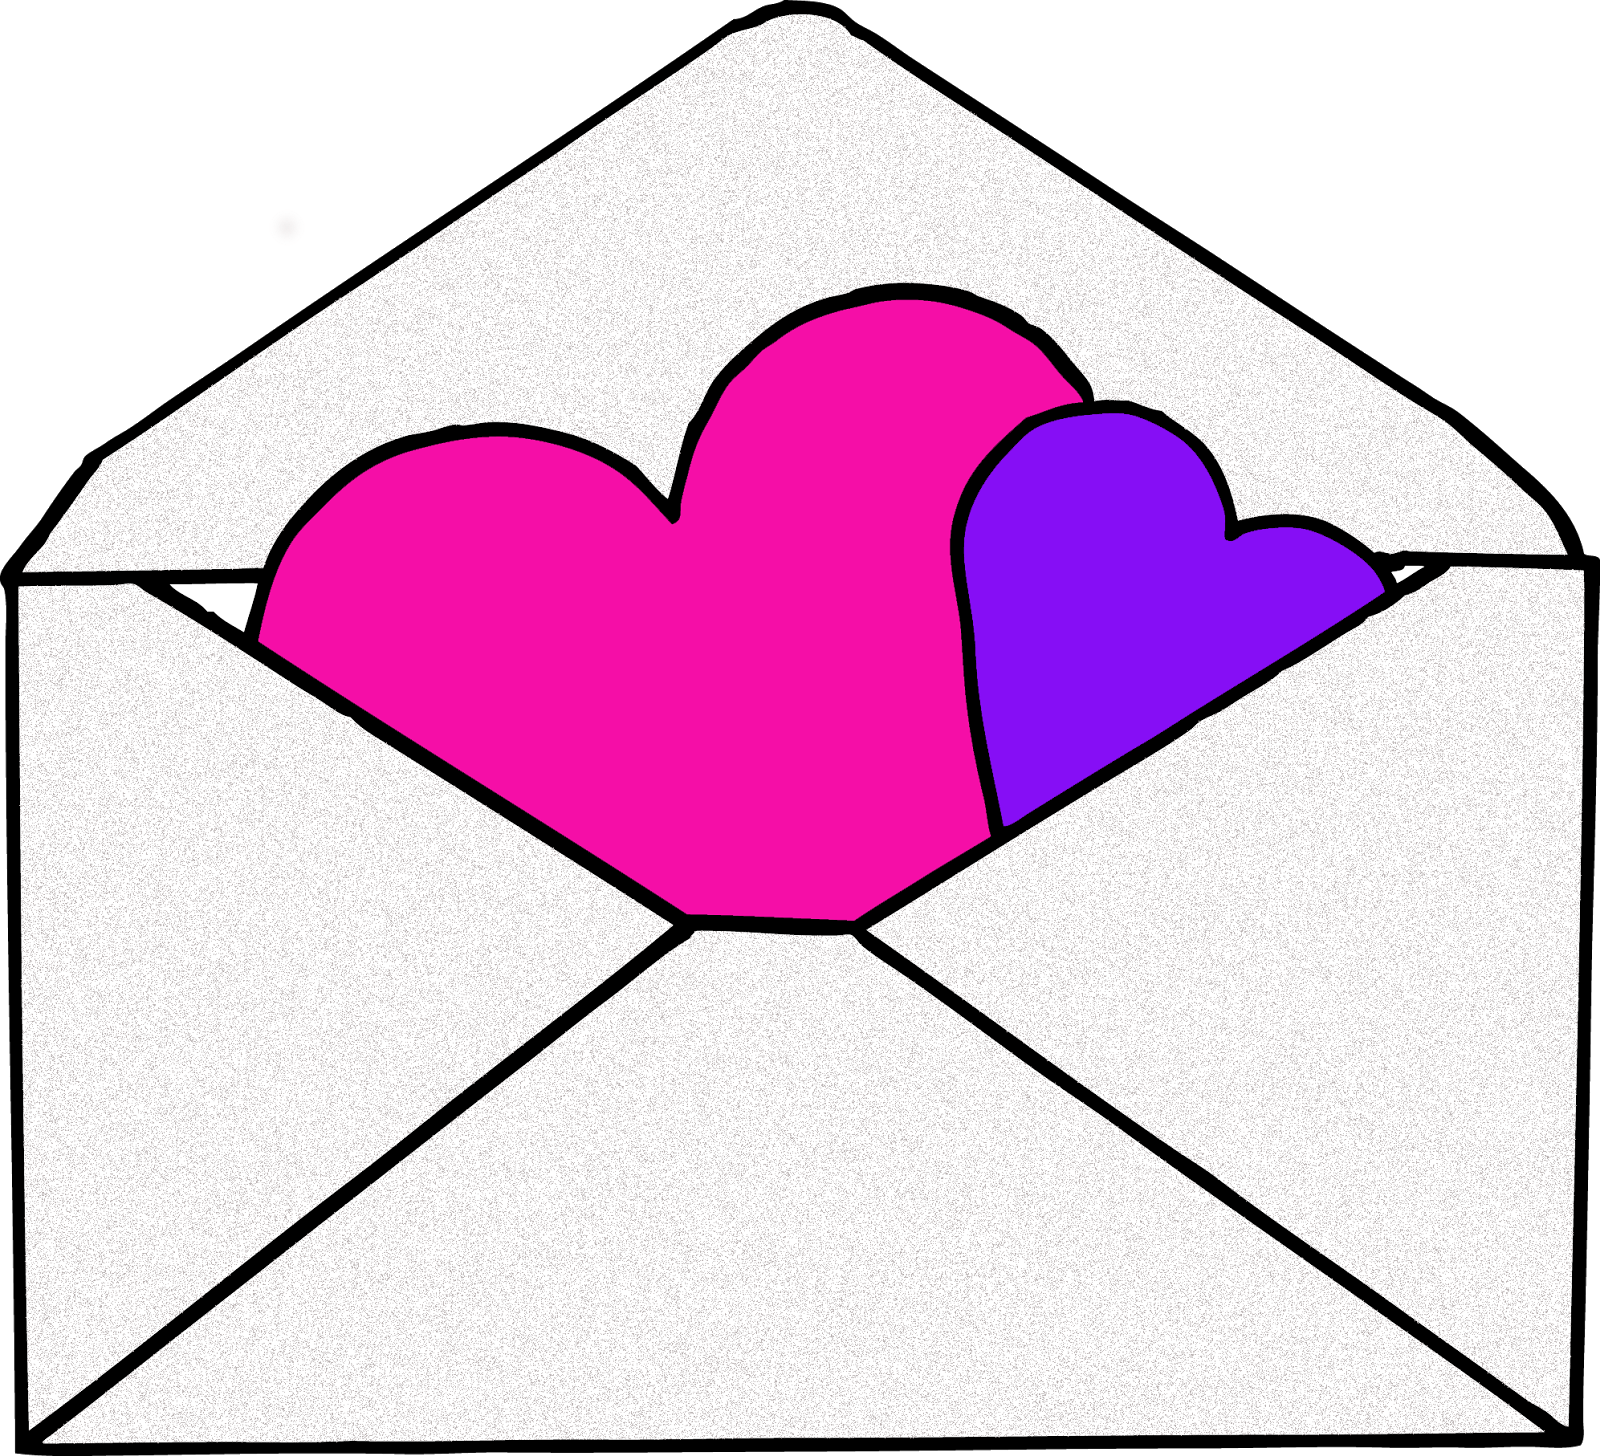 Download Images For Envelope Clipart Png Valentine Envelope Clipart Png Image With No Background Pngkey Com All envelope clip art are png format and transparent background. pngkey